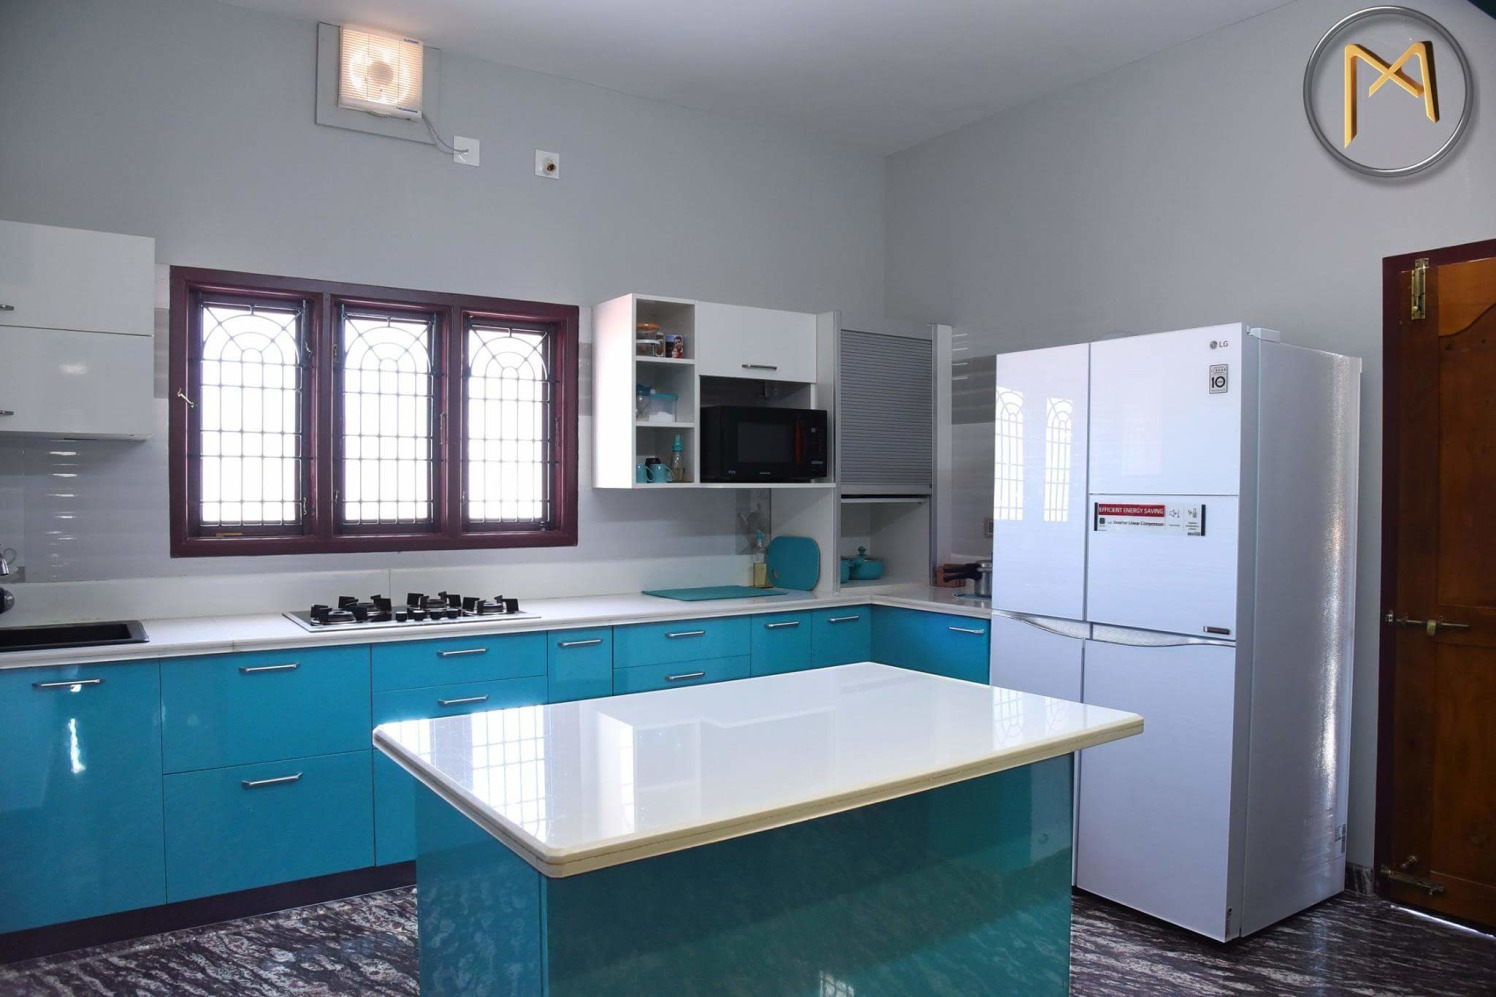 Modular kitchen with torquiose shades by Syed Illias Modular-kitchen Modern | Interior Design Photos & Ideas